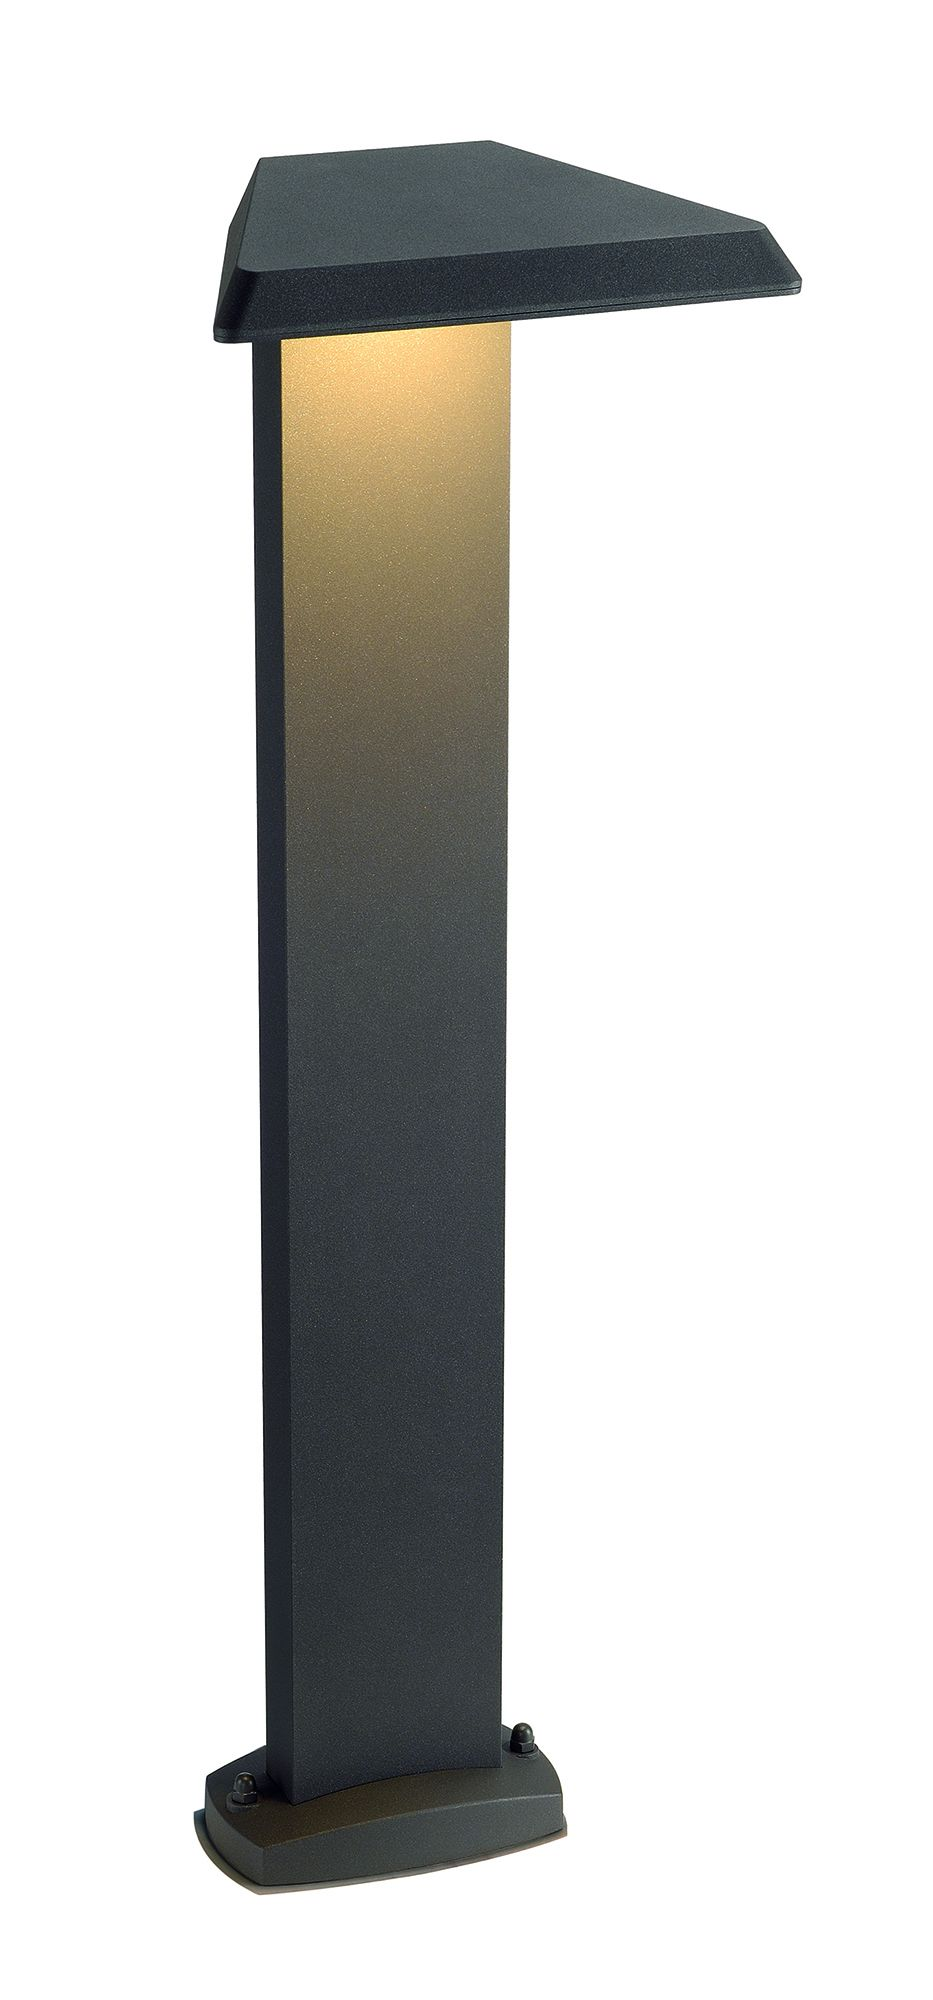 borne led trapecco anthracite de slv un eclairage pour exterieur. Black Bedroom Furniture Sets. Home Design Ideas